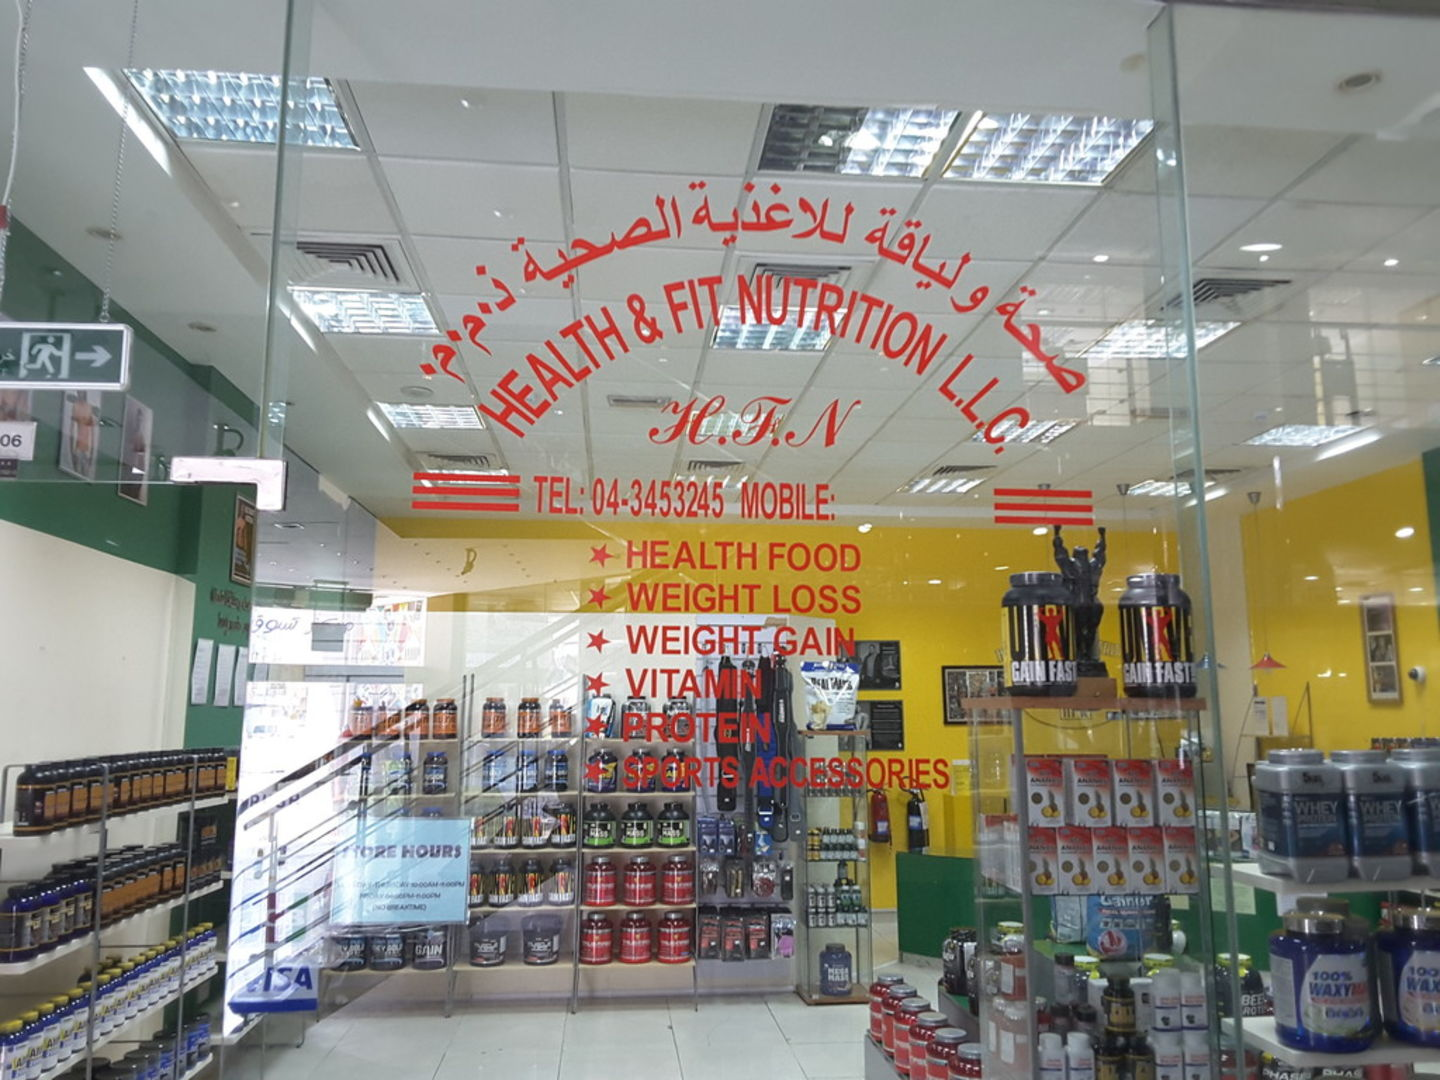 HiDubai-business-health-fit-nutrition-food-beverage-health-food-supplement-stores-al-satwa-dubai